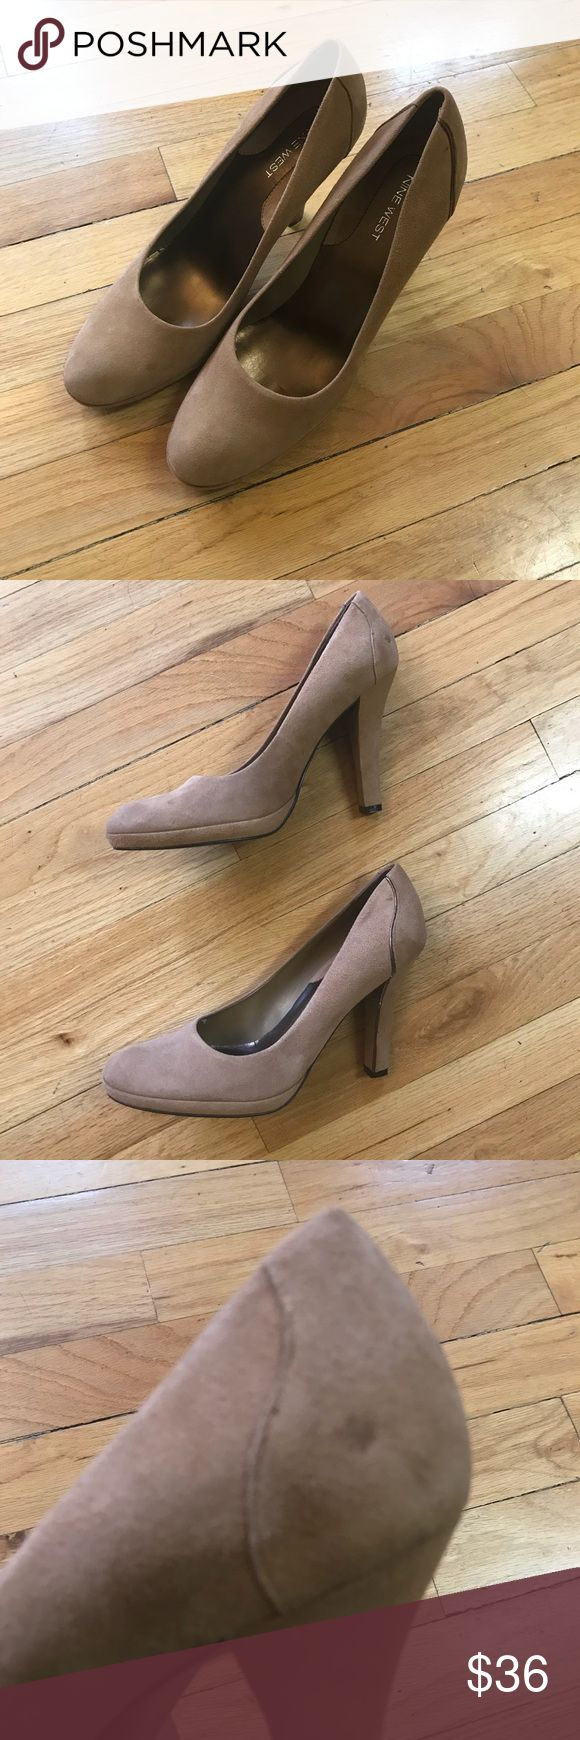 """Tan Suede Nine West Heels Unworn Size 10M Tan Suede Nine West Platform Heels. Minor damage seen on both shoes in picture - they've been in moving box with other shoes for 3 months. They have 1/2 inch platform. 4.5"""" heel. Nine West Shoes Heels"""